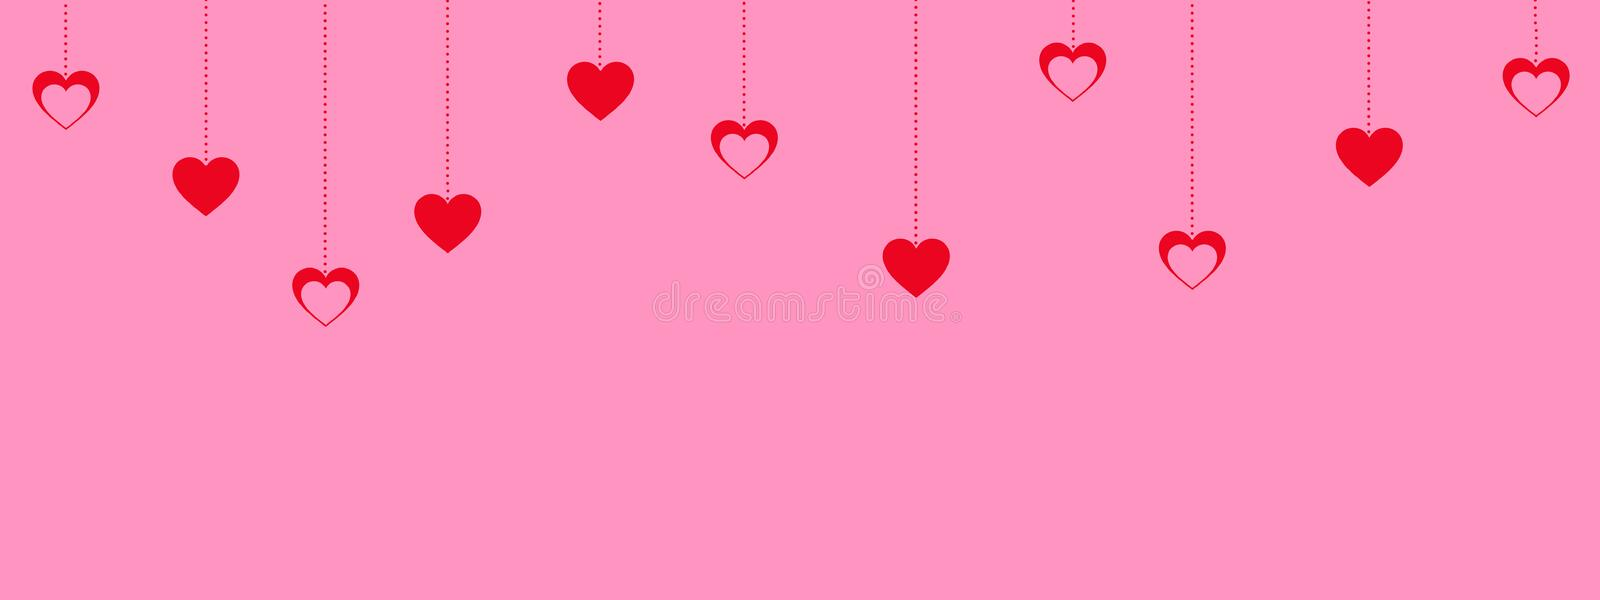 Pink valentine`s day background with hanging red hearts.  stock illustration